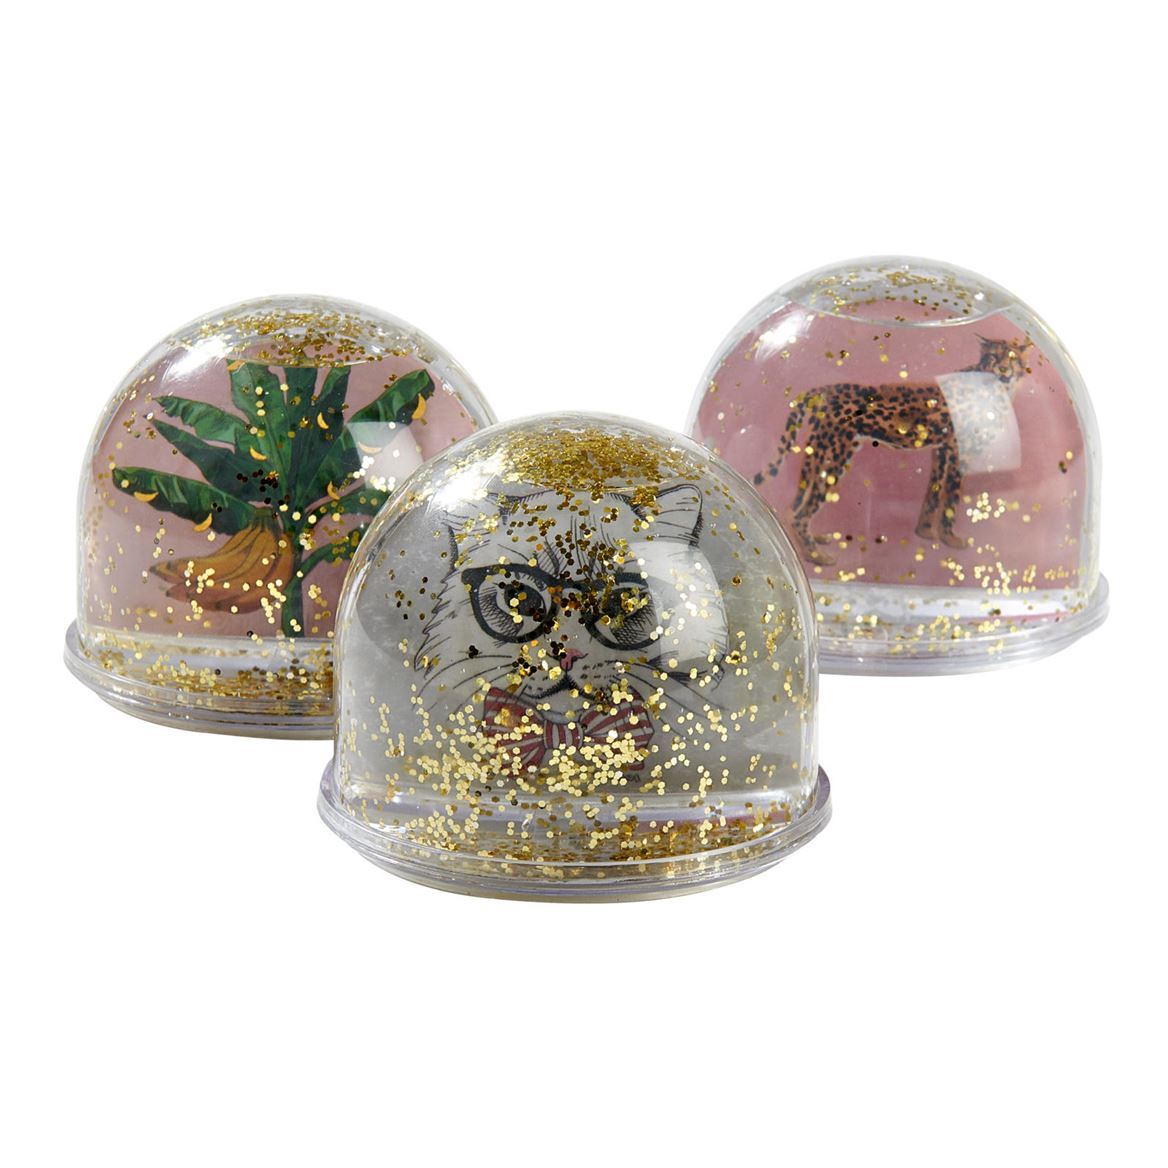 PARTY Boule à paillettes diverses couleurs H 7 cm; Ø 8,5 cm_party-boule-à-paillettes-diverses-couleurs-h-7-cm;-ø-8,5-cm